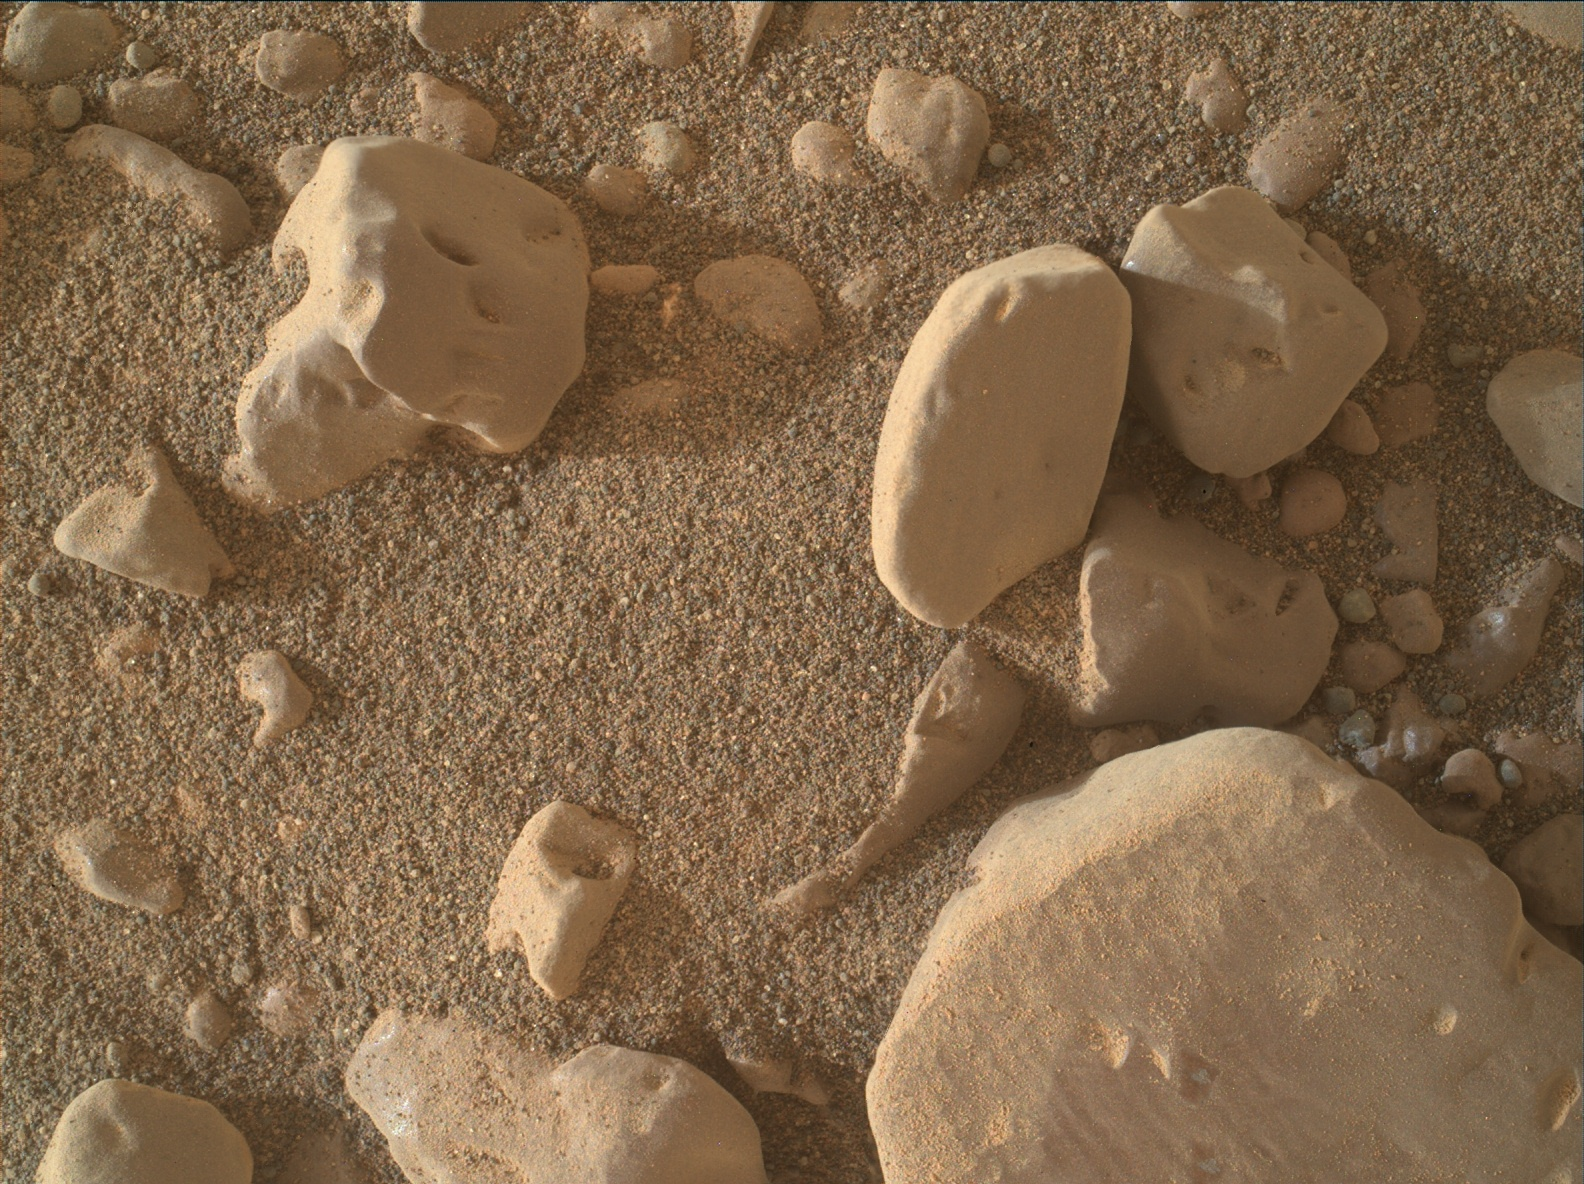 Nasa's Mars rover Curiosity acquired this image using its Mars Hand Lens Imager (MAHLI) on Sol 2309